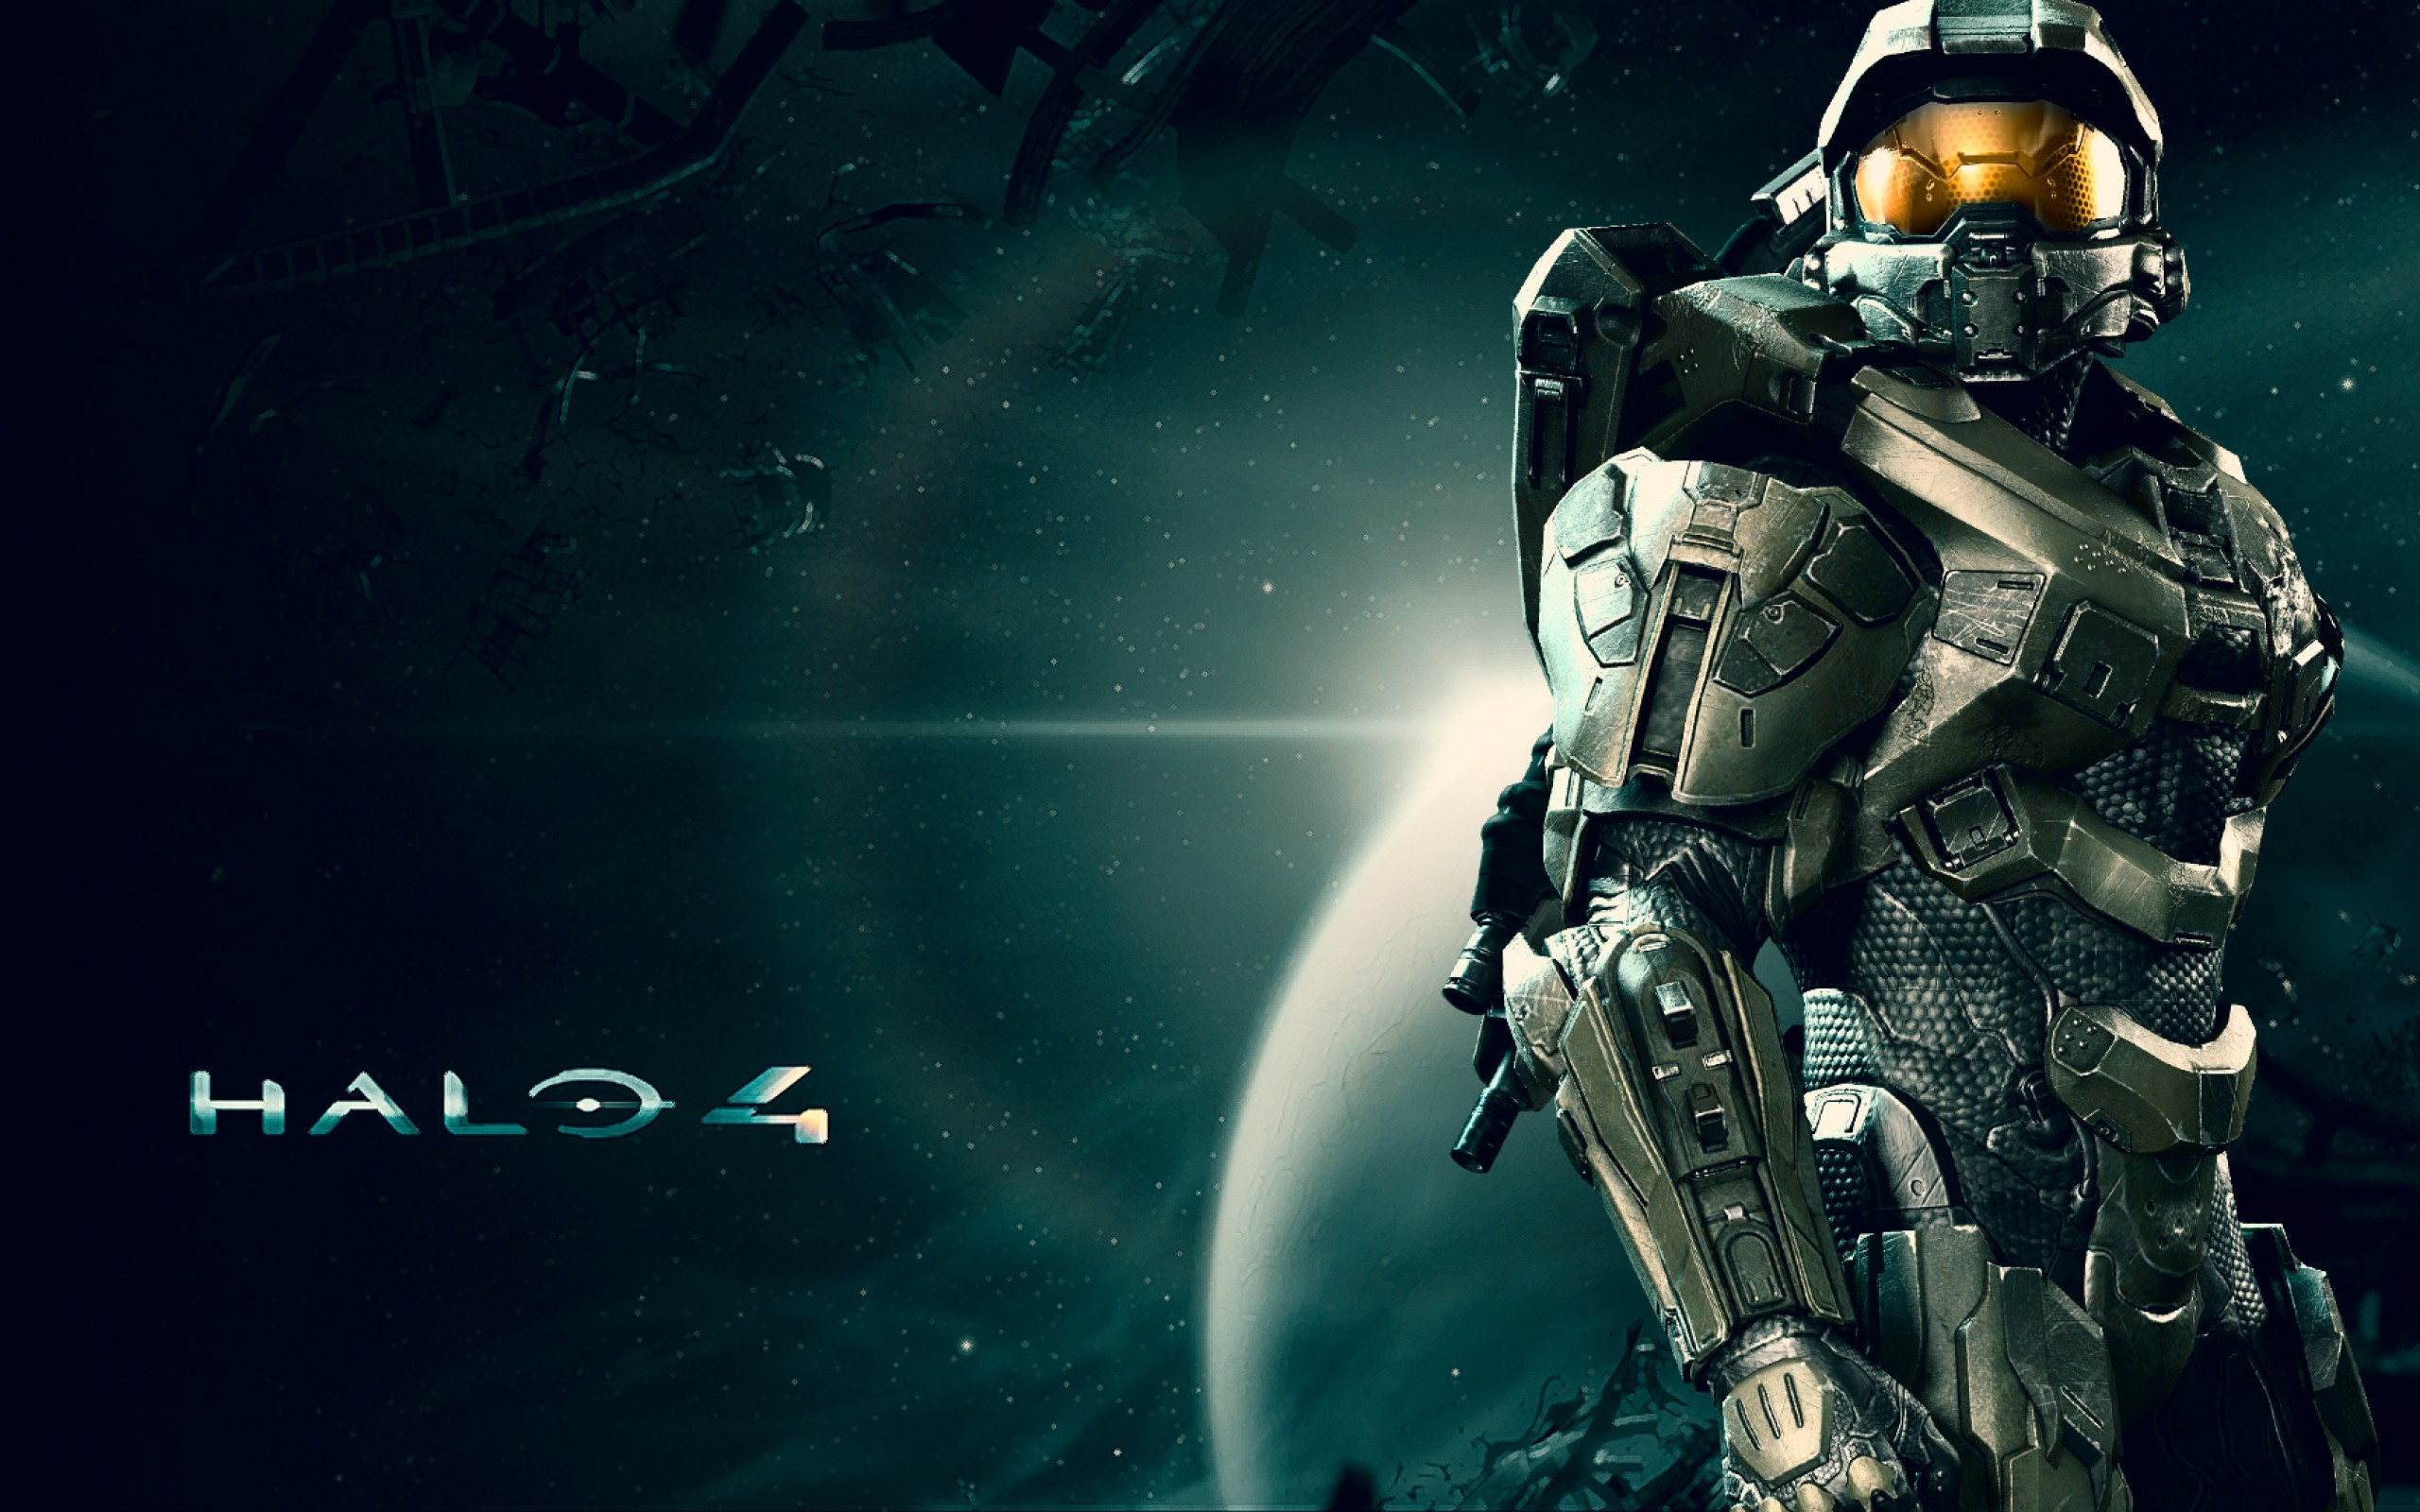 2560x1600 Explore More Wallpapers in the Halo 4 Subcategory!